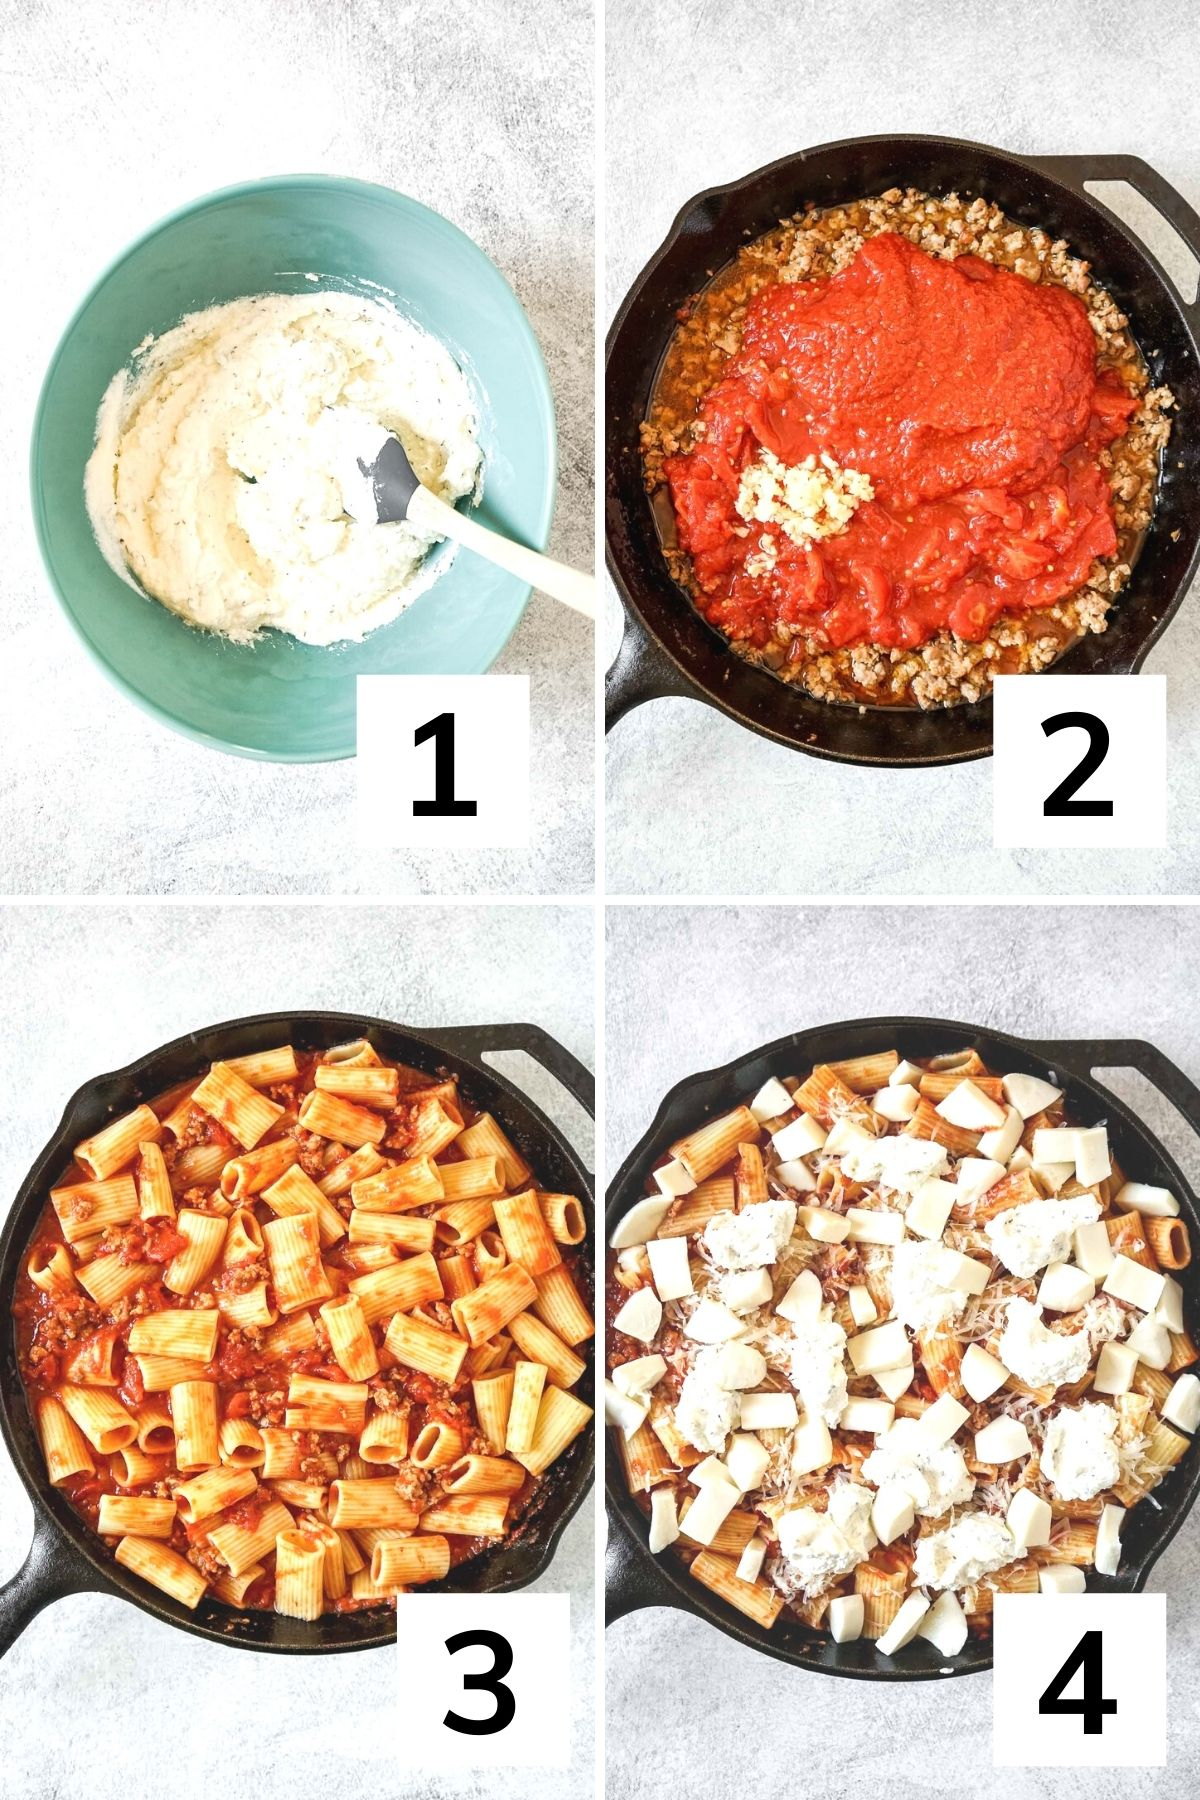 How to make Rigatoni al Forno step by step.